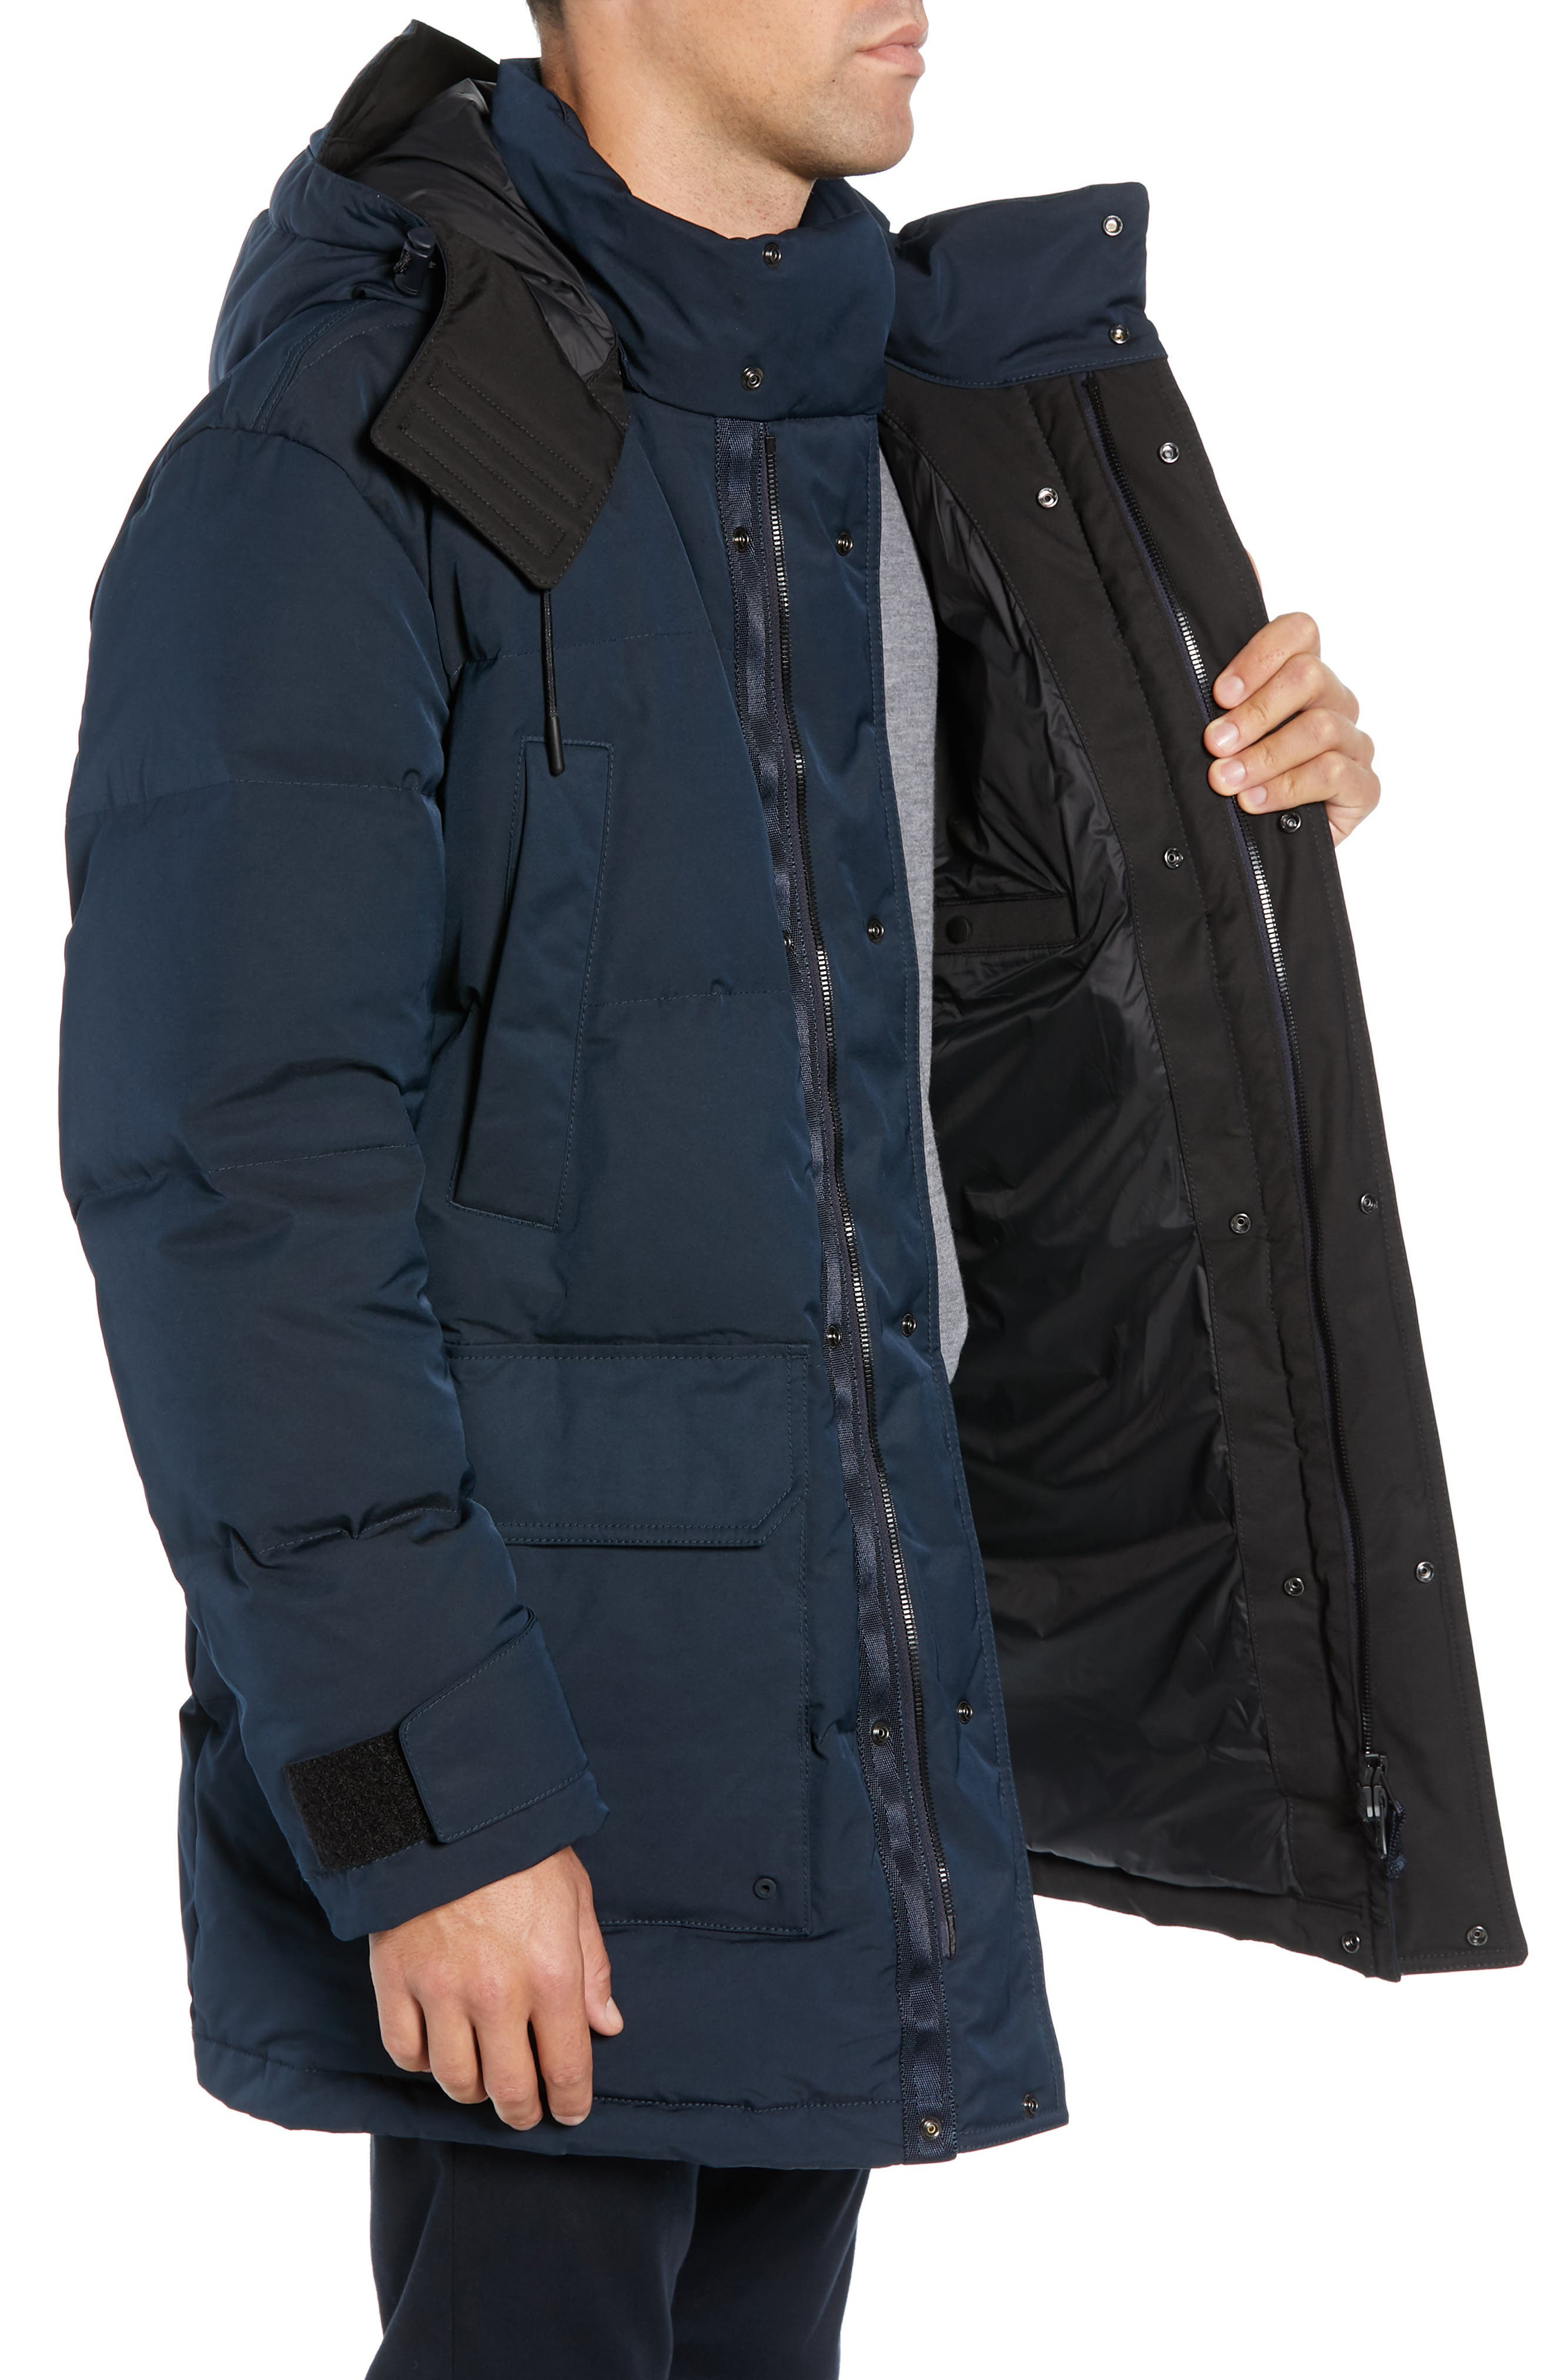 Onek Regular Fit Twill Puffer Jacket,                             Alternate thumbnail 3, color,                             BLUE